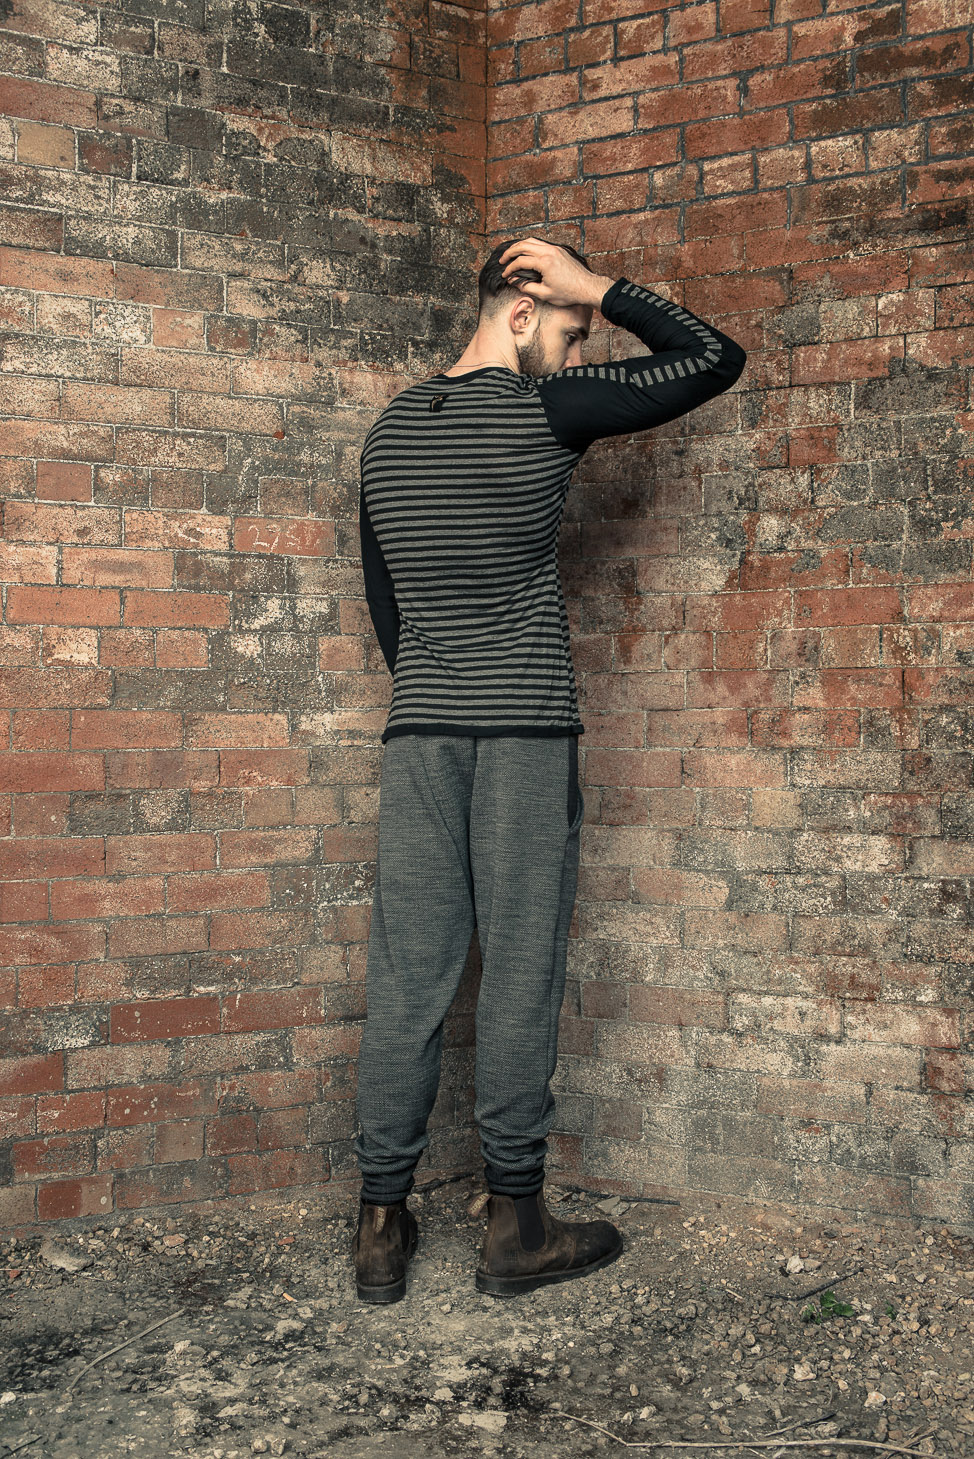 zaramia-ava-zaramiaava-leeds-fashion-designer-ethical-sustainable-tailored-minimalist-fitted-versatile-drape-kobe-grey-tshirt-top-hareem-trousers-black-grey-texture-styling-menswear-model-29